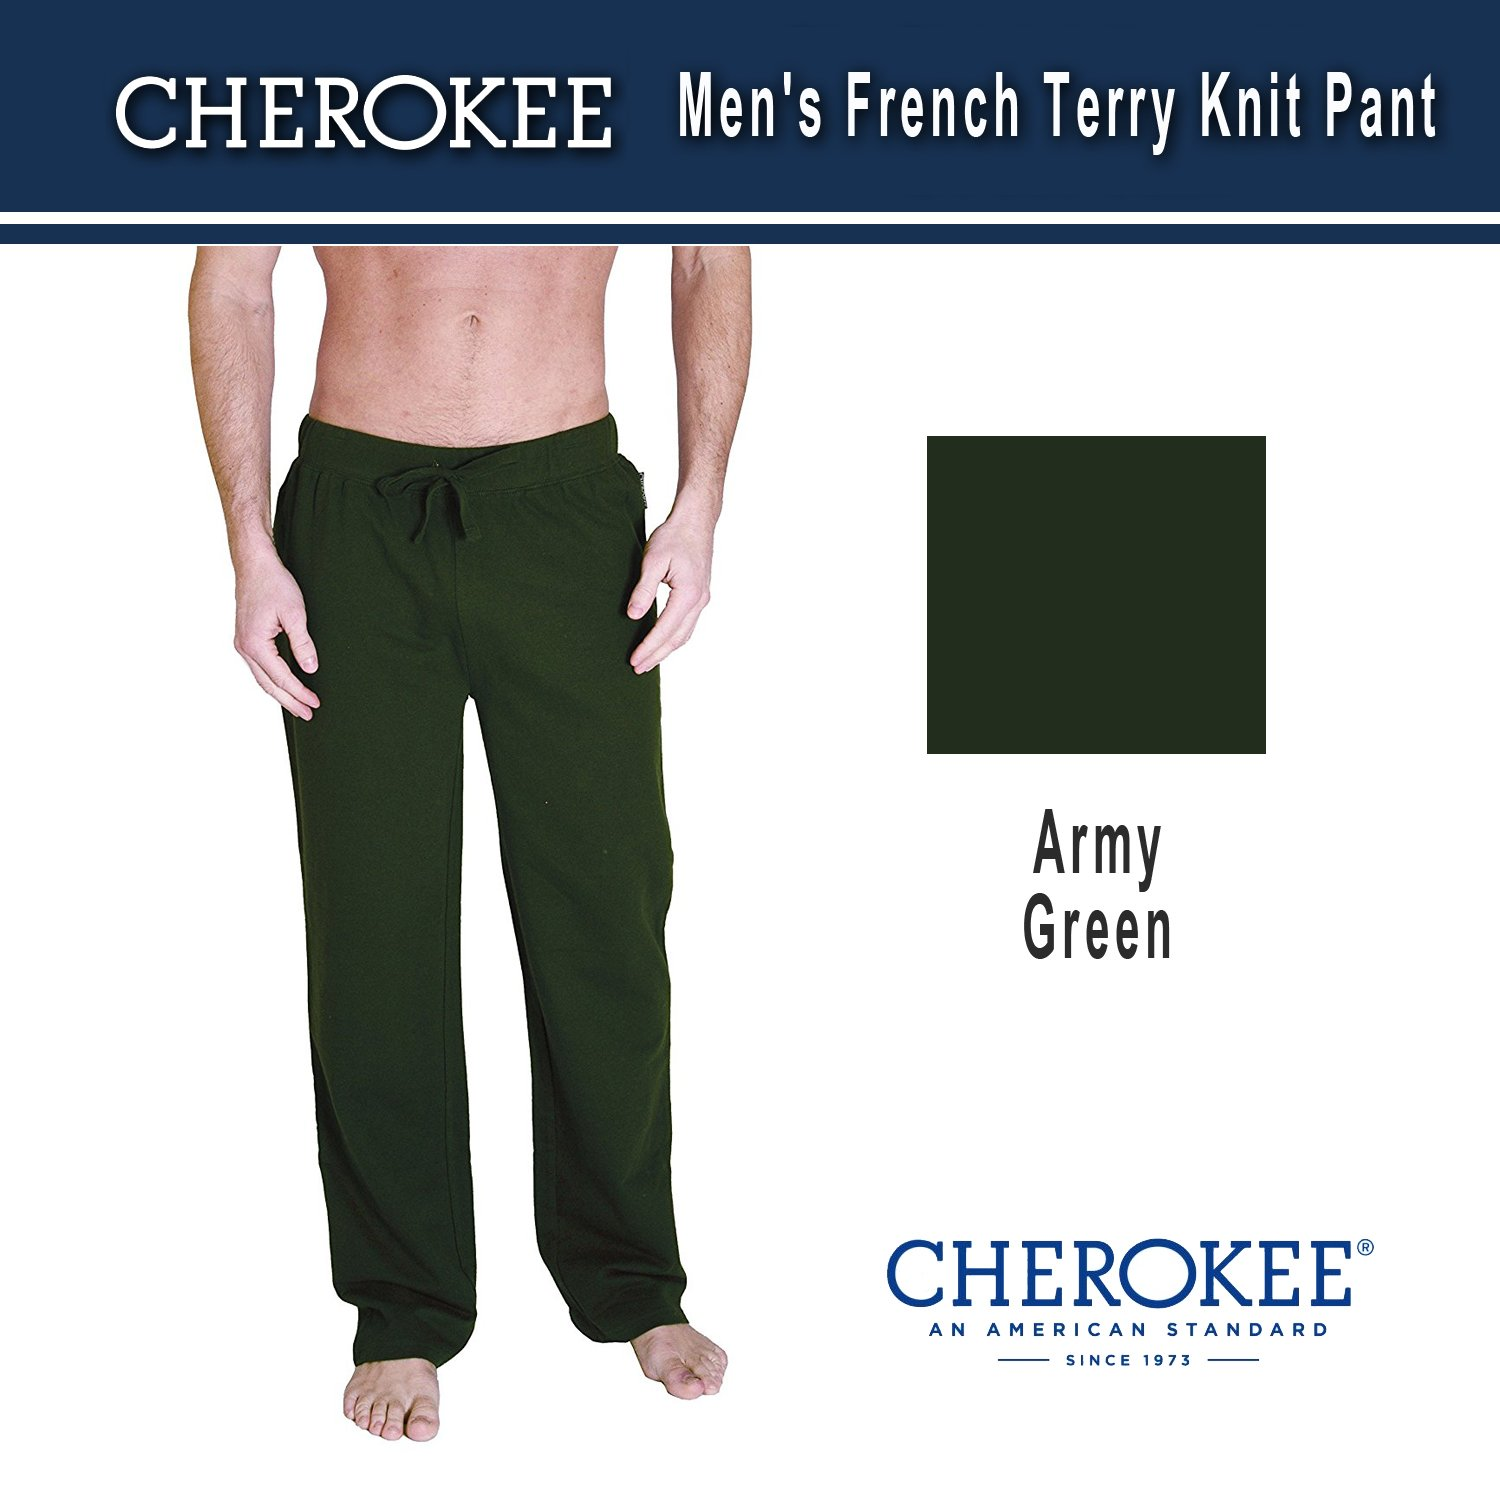 e473cef5fb Cherokee Men Relaxed French Terry Knit Pants Sleepwear at Amazon Men s  Clothing store